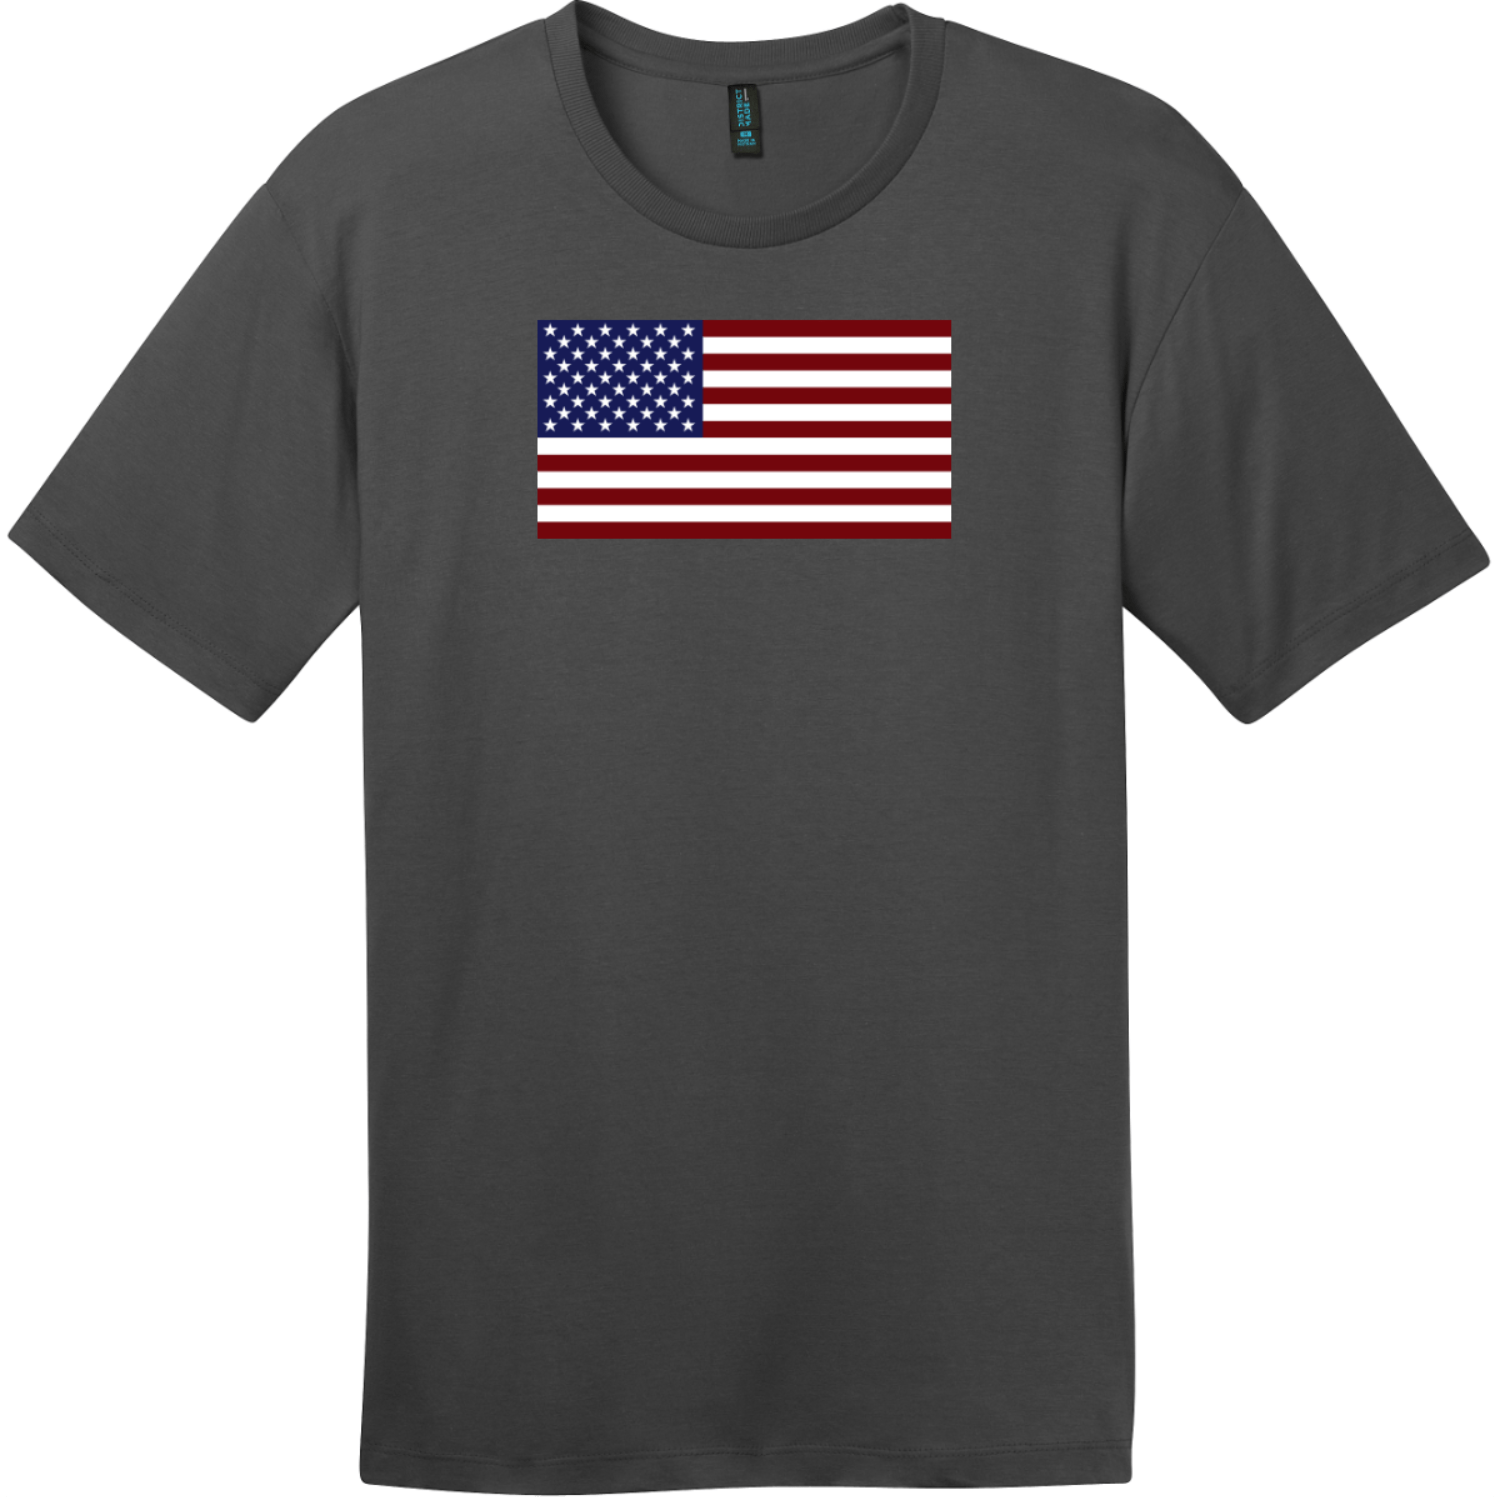 United States of America Flag T-Shirt Charcoal District Perfect Weight Tee DT104